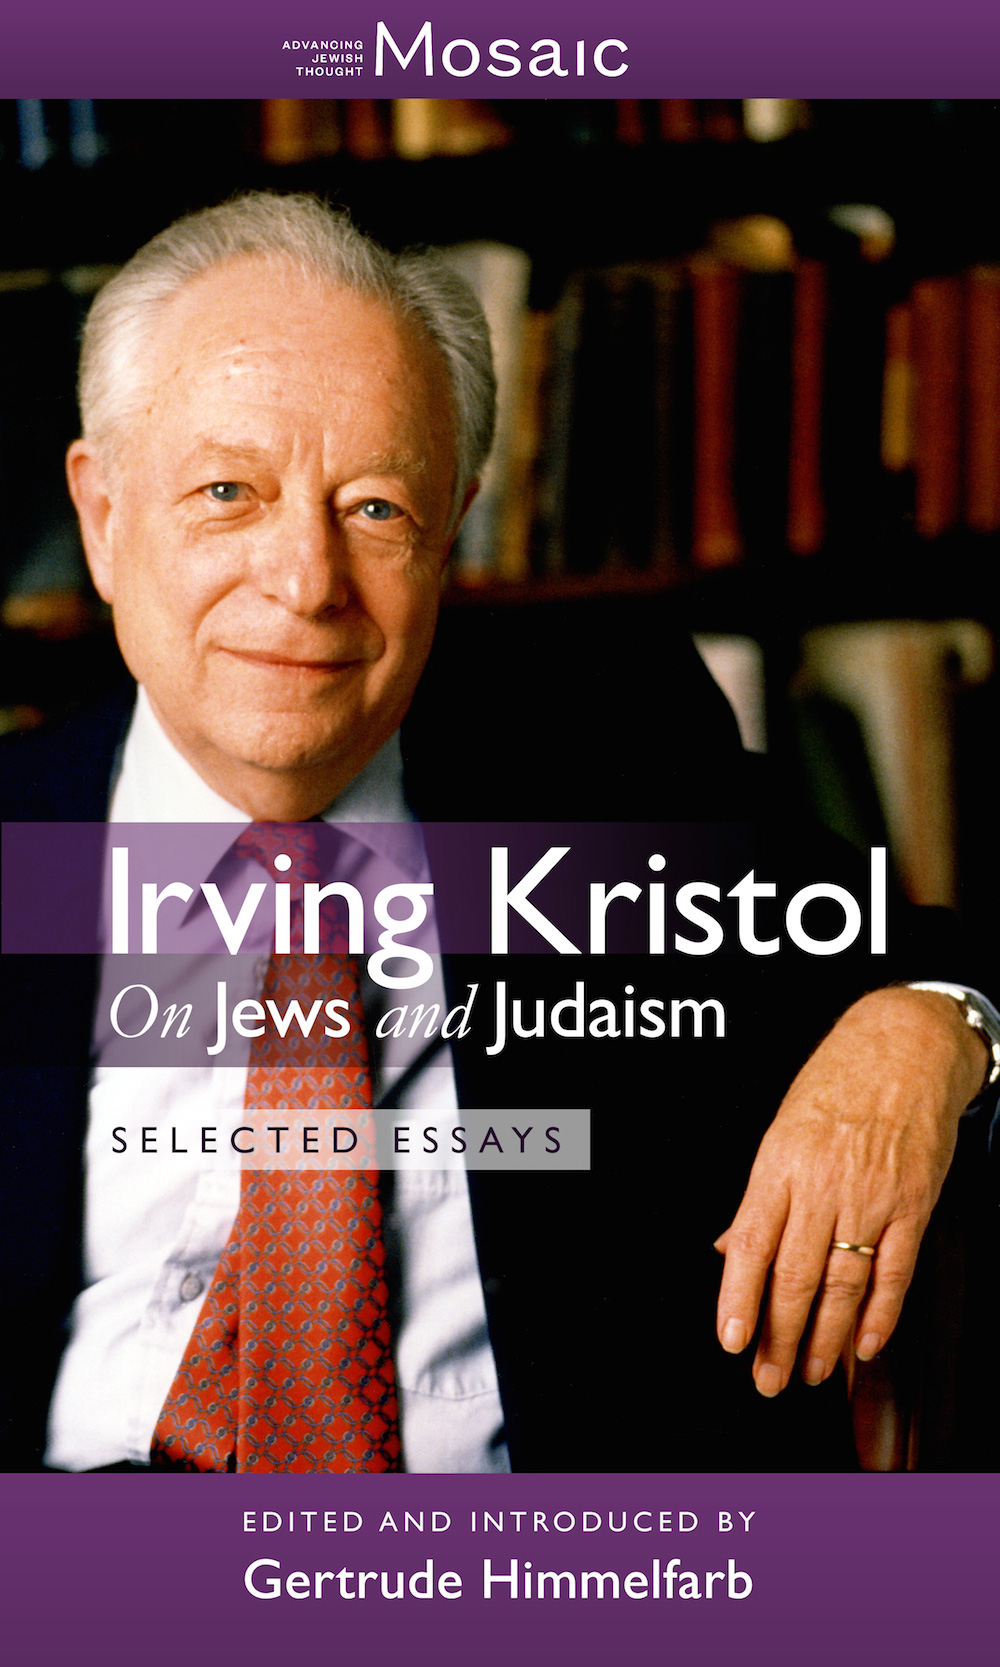 on jews and judaism selected essays mosaic on jews and judaism selected essays